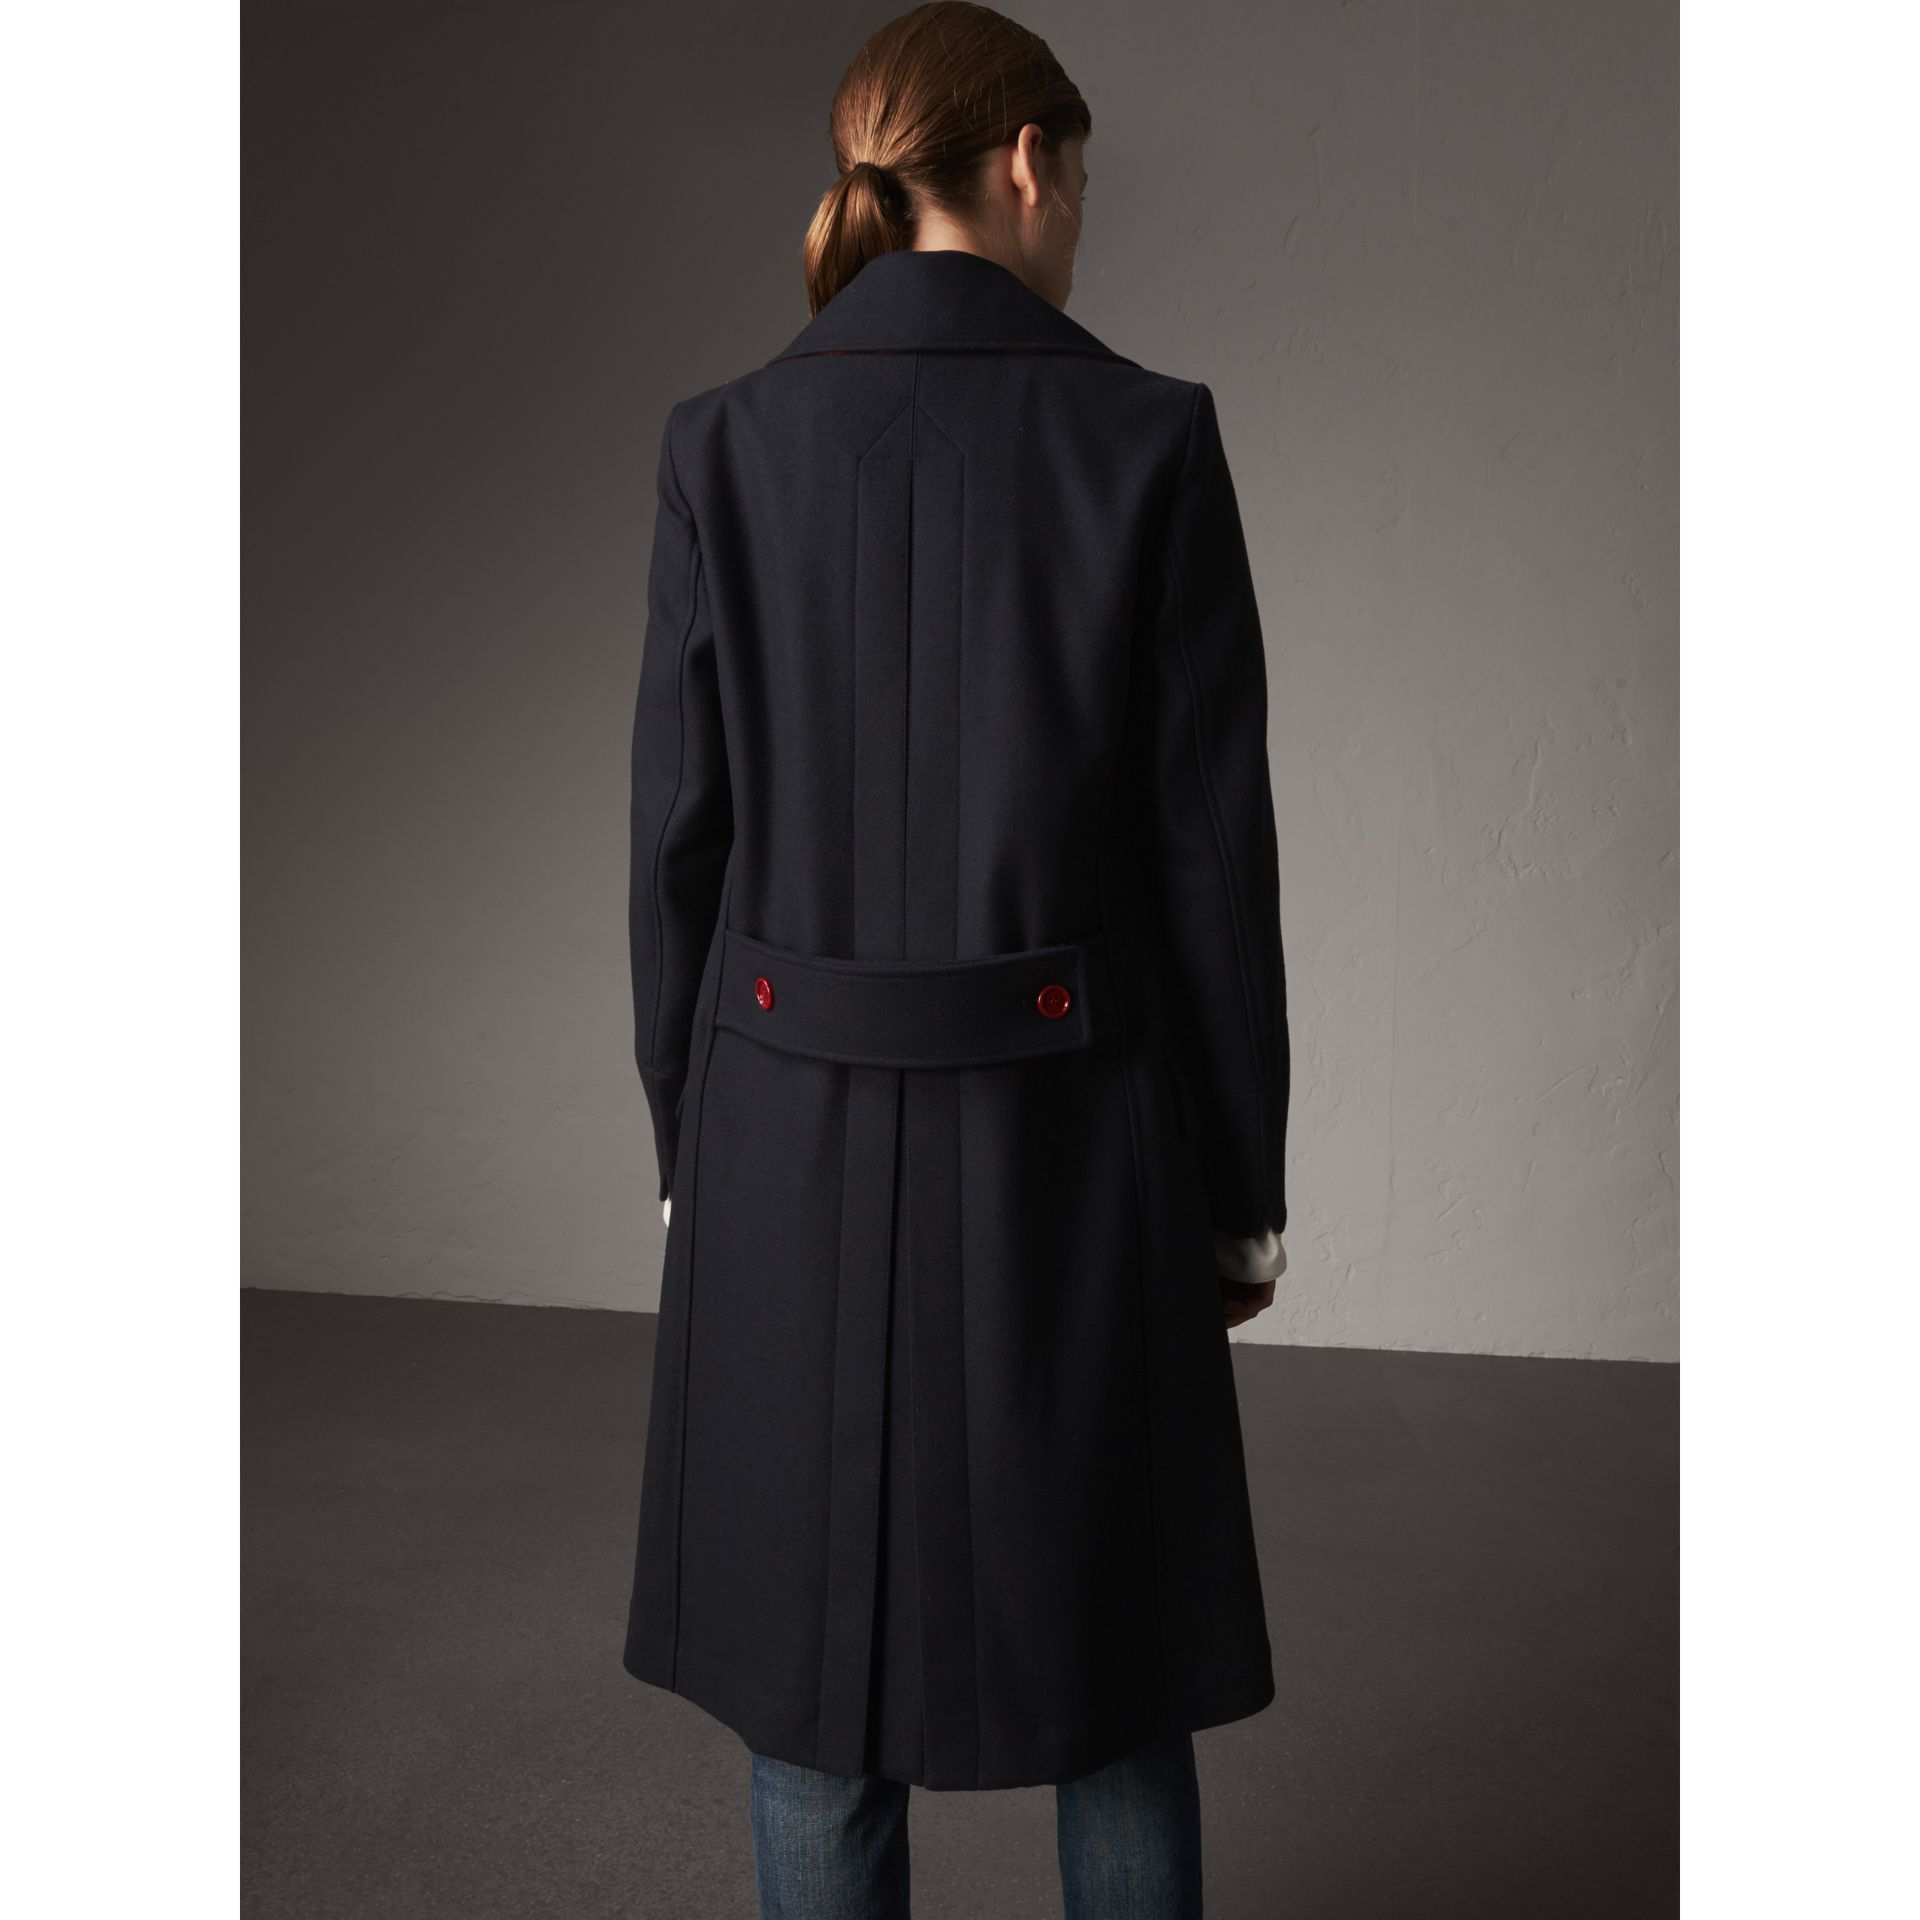 Resin Button Wool Oversize Coat in True Navy - Women | Burberry - gallery image 3